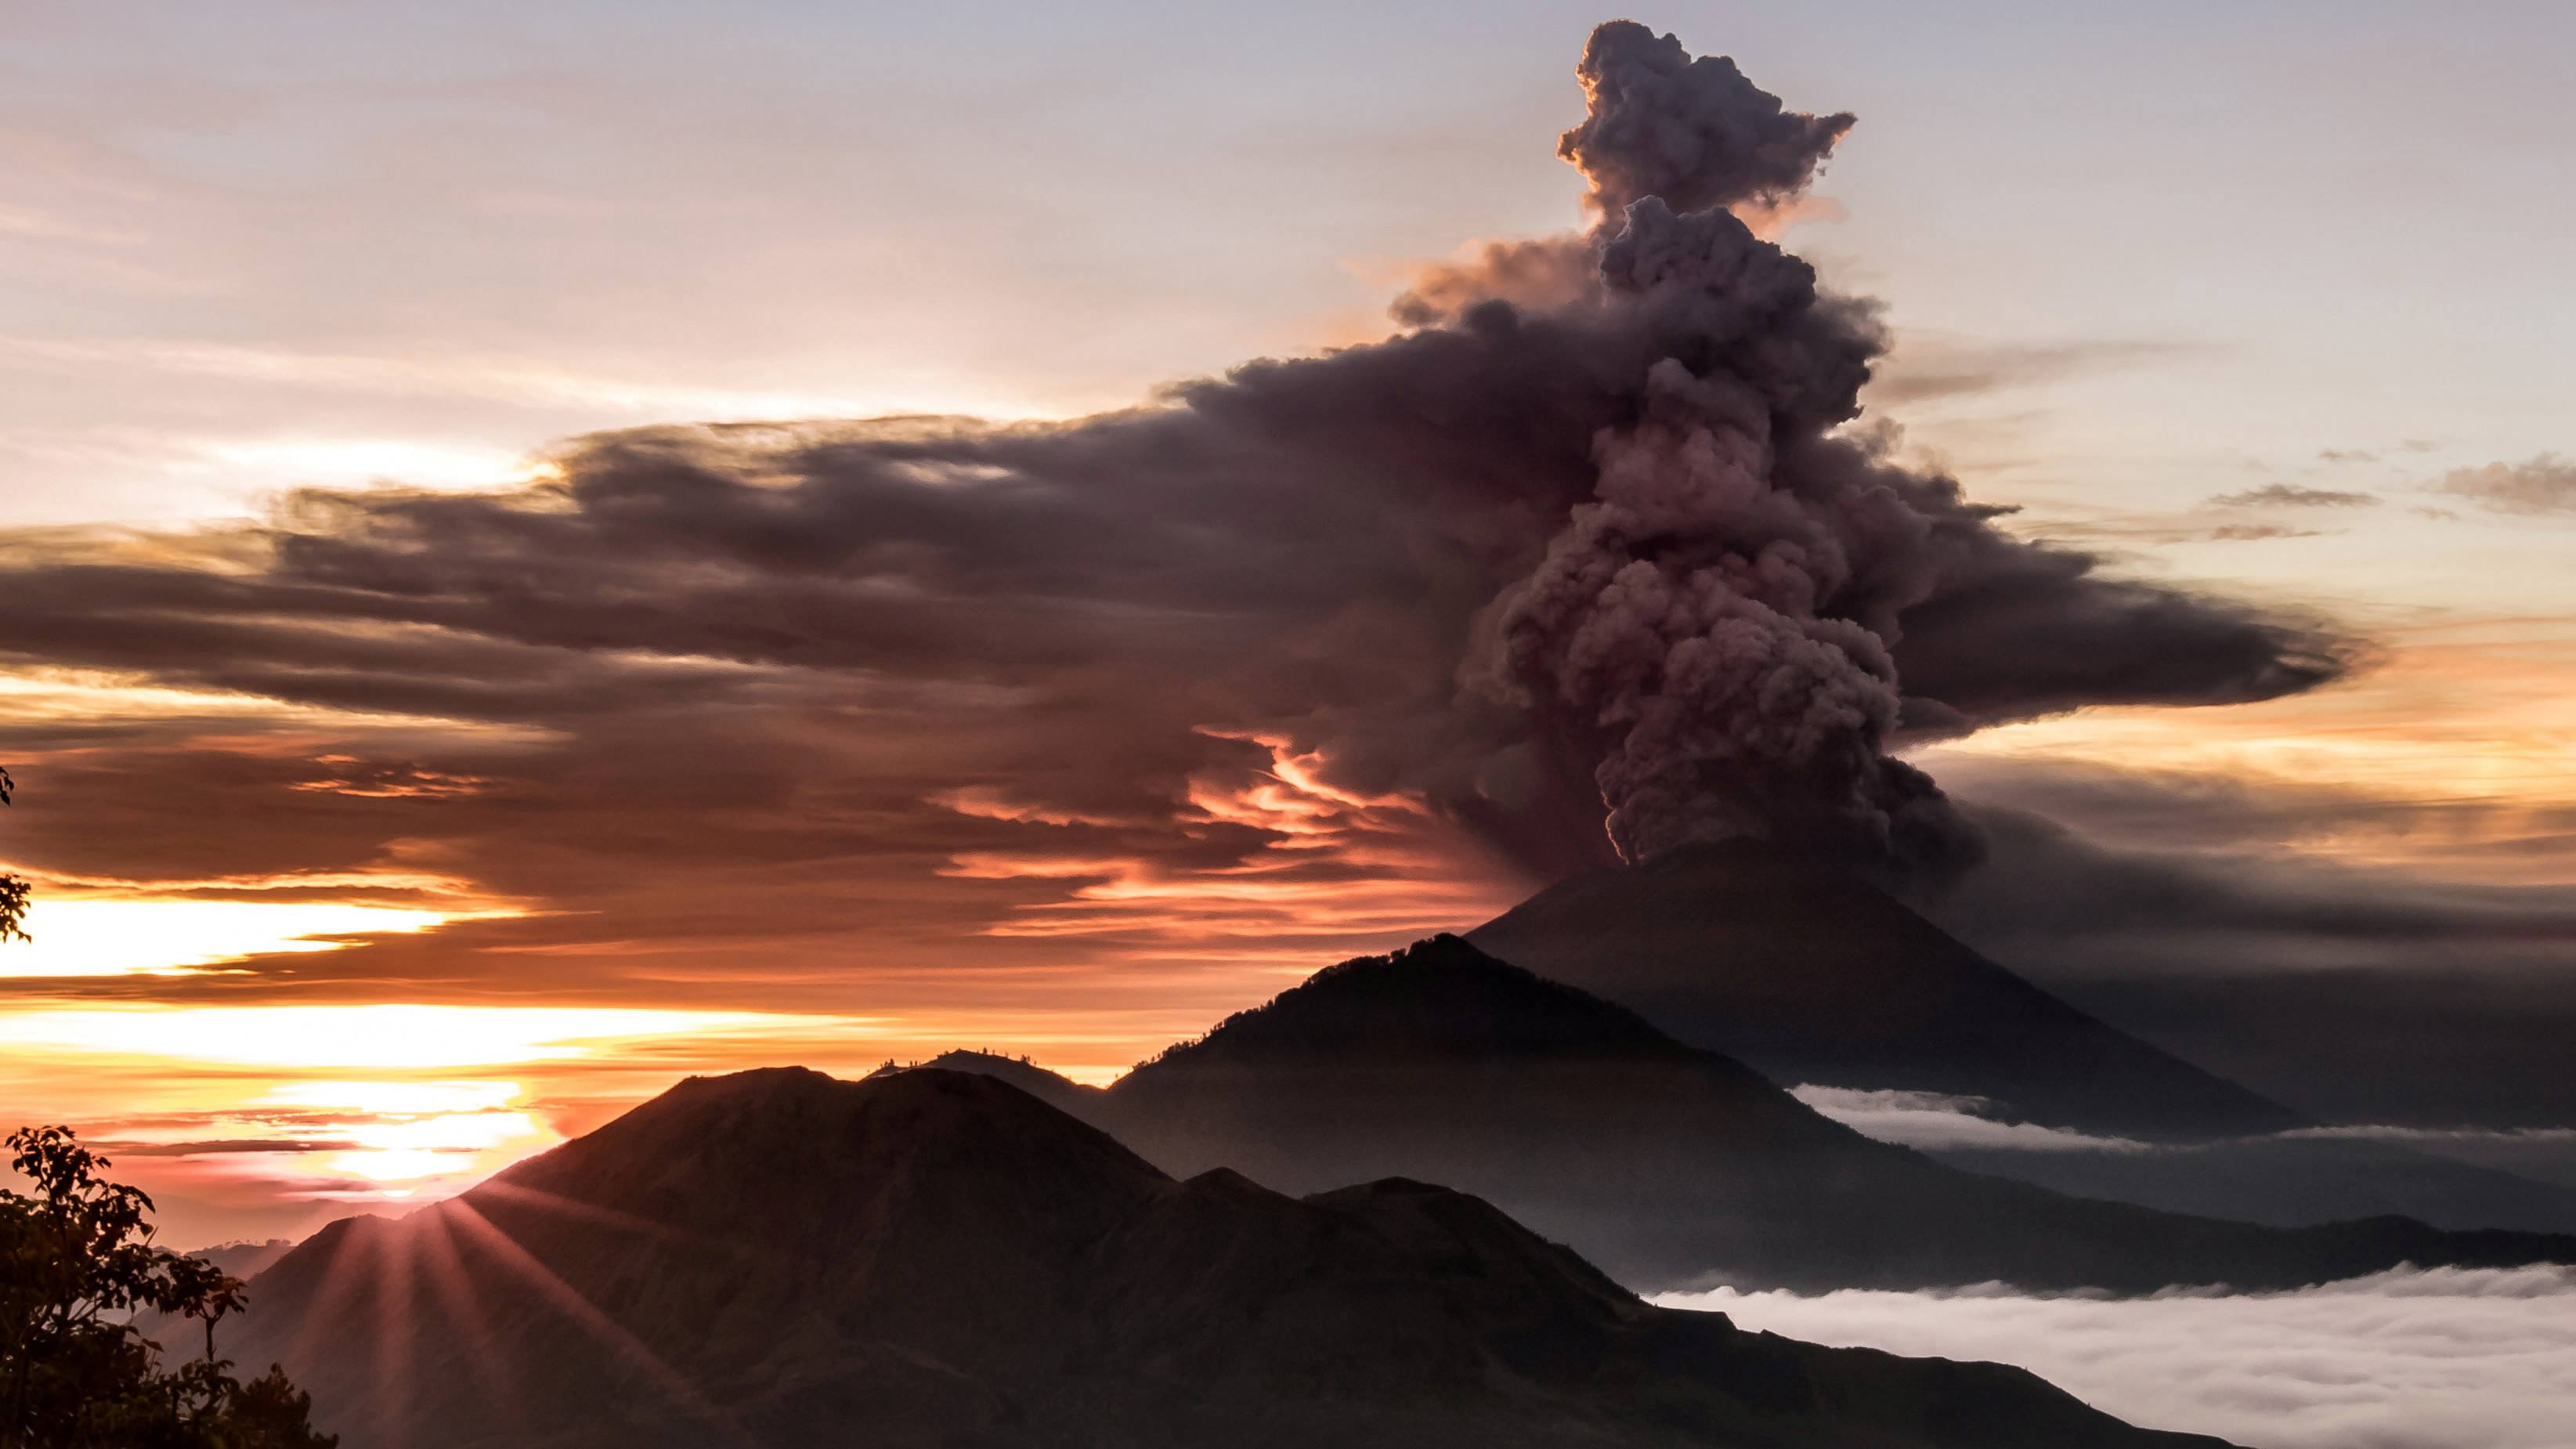 Flights cancelled as Bali volcano continues eruption